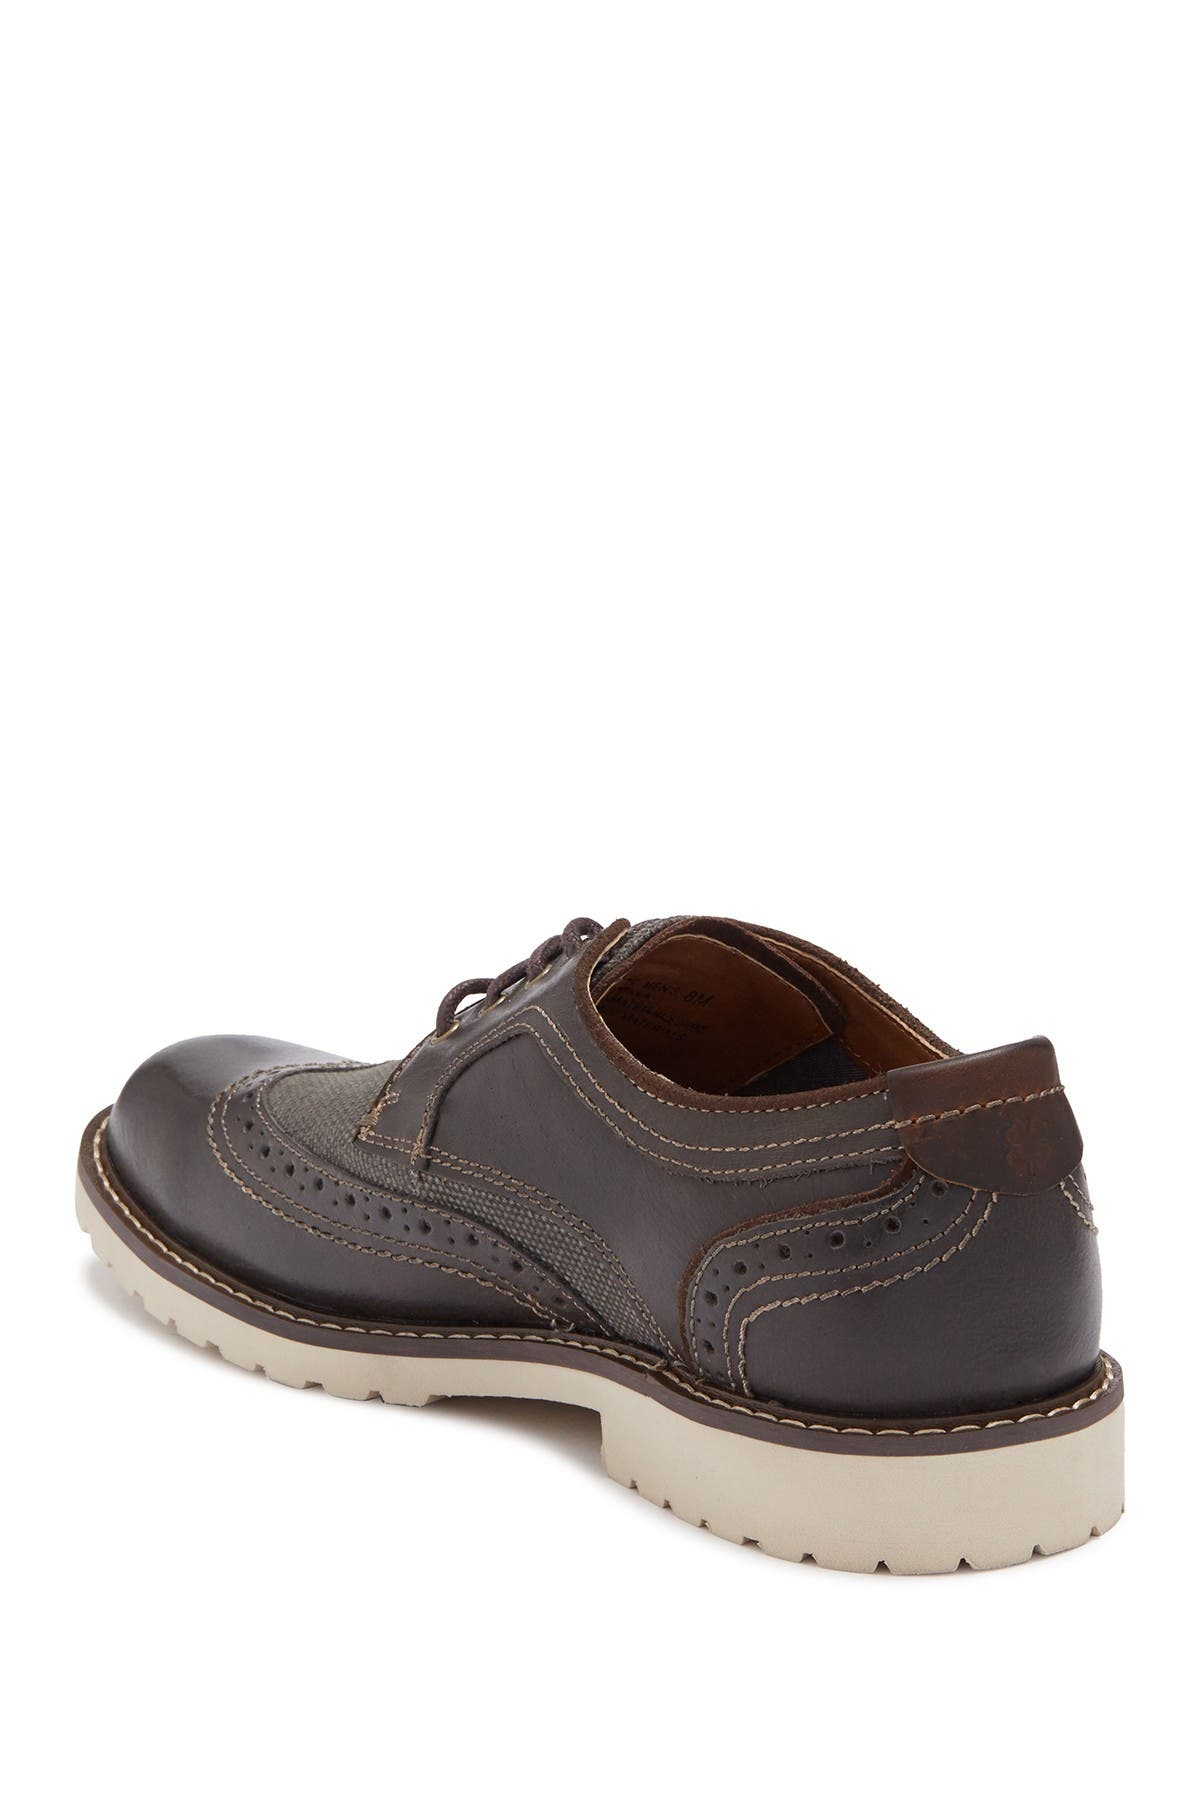 Image of Lucky Brand Monroe Wingtip Derby